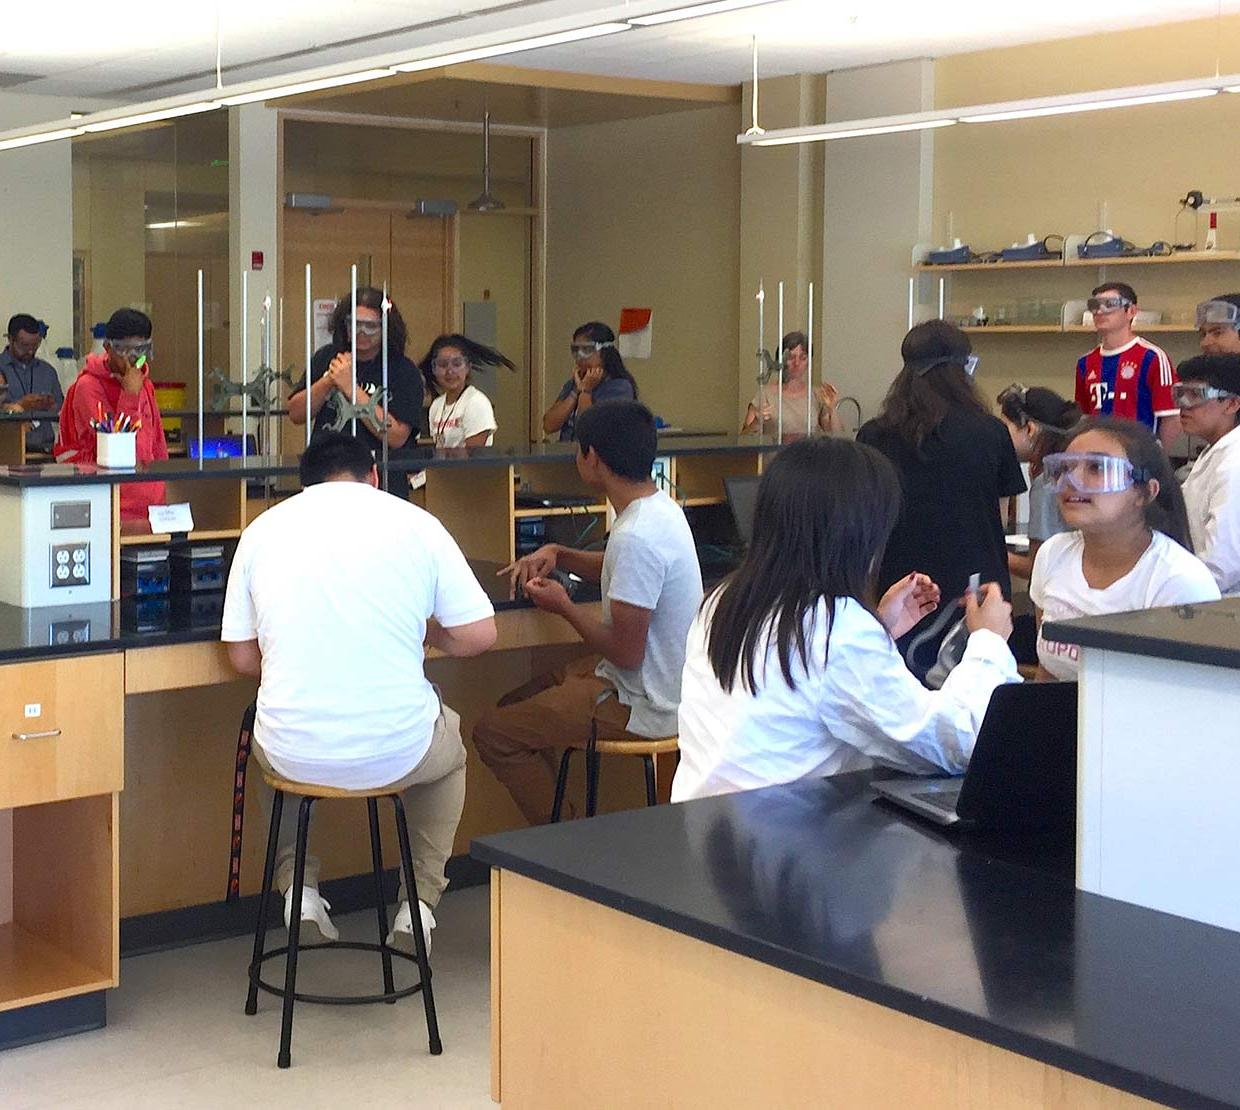 camp goers working in Chemistry lab